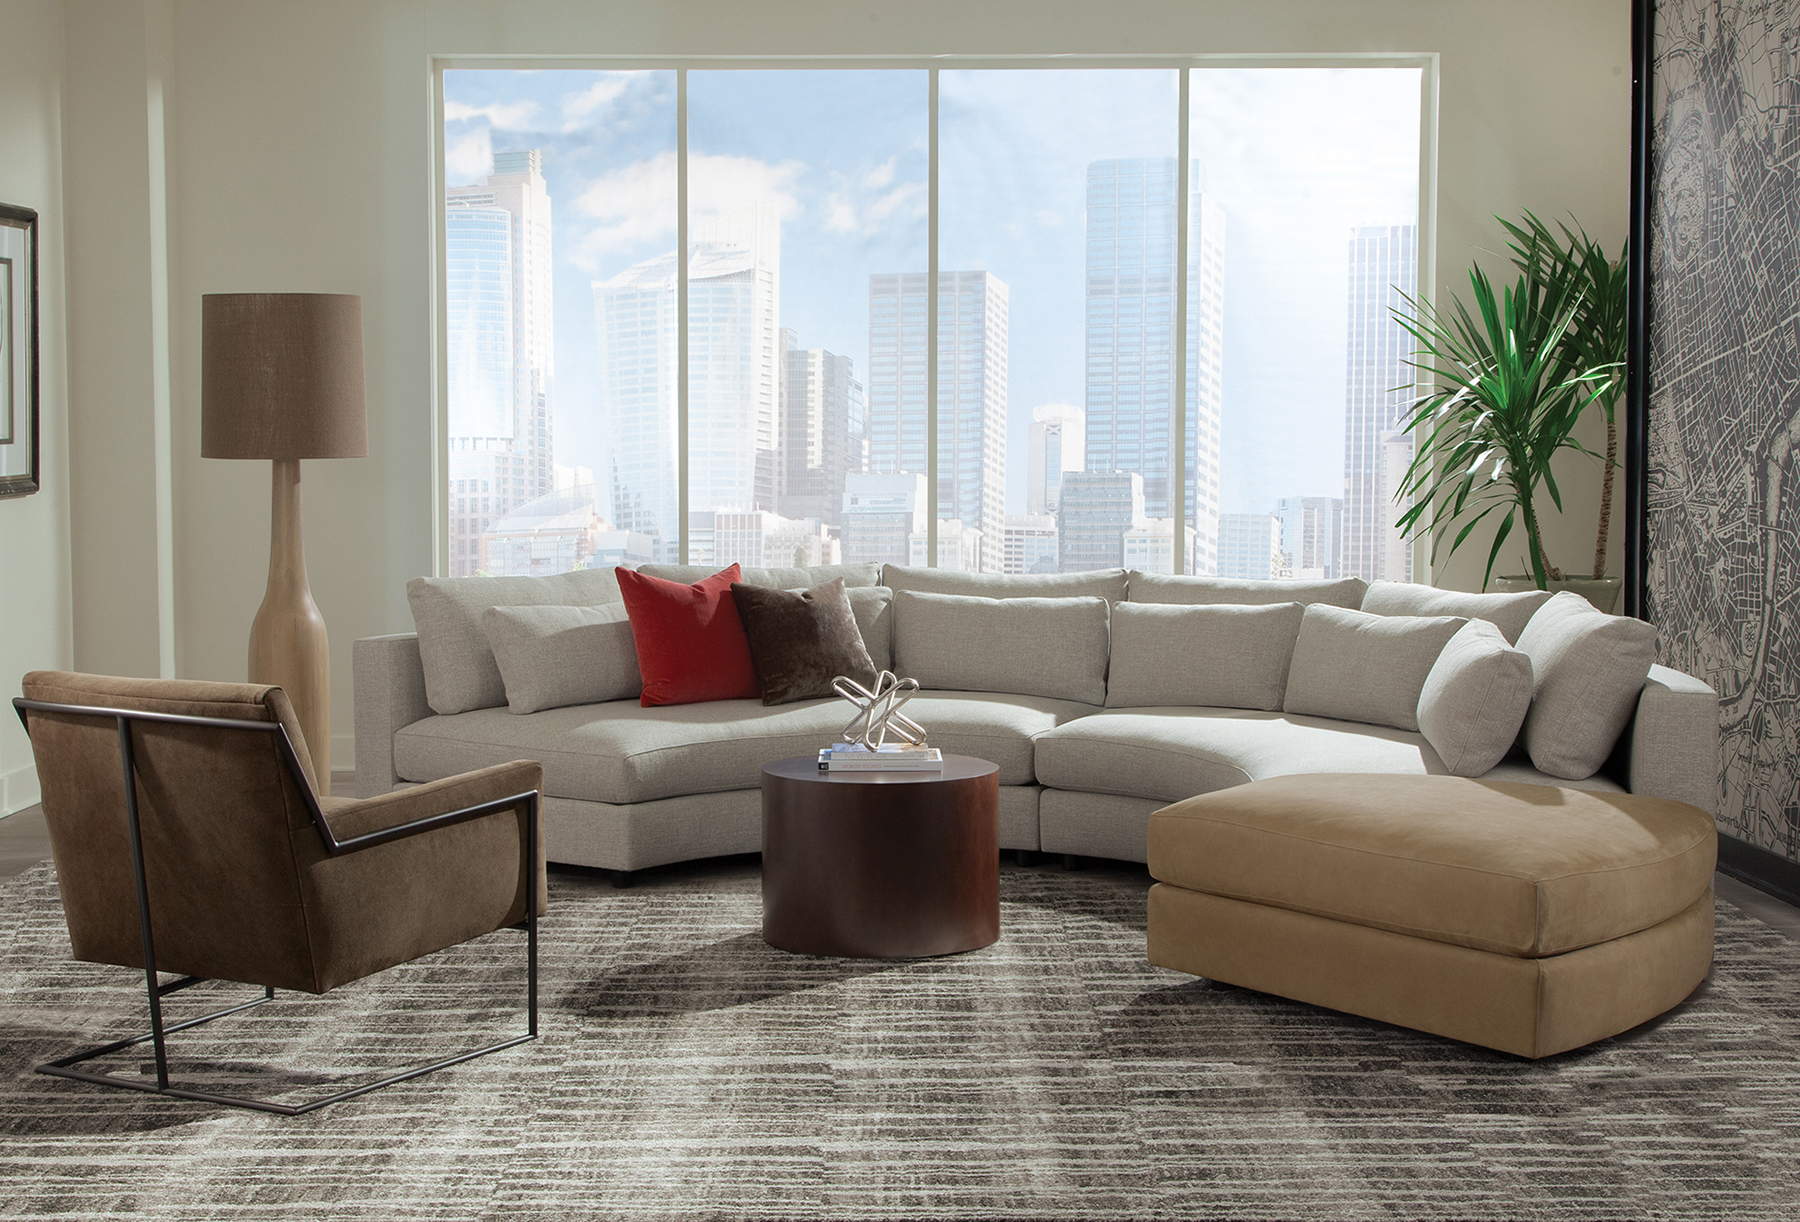 Hi-Wire lounge chair with Straight Up sectional from Thayer Coggin